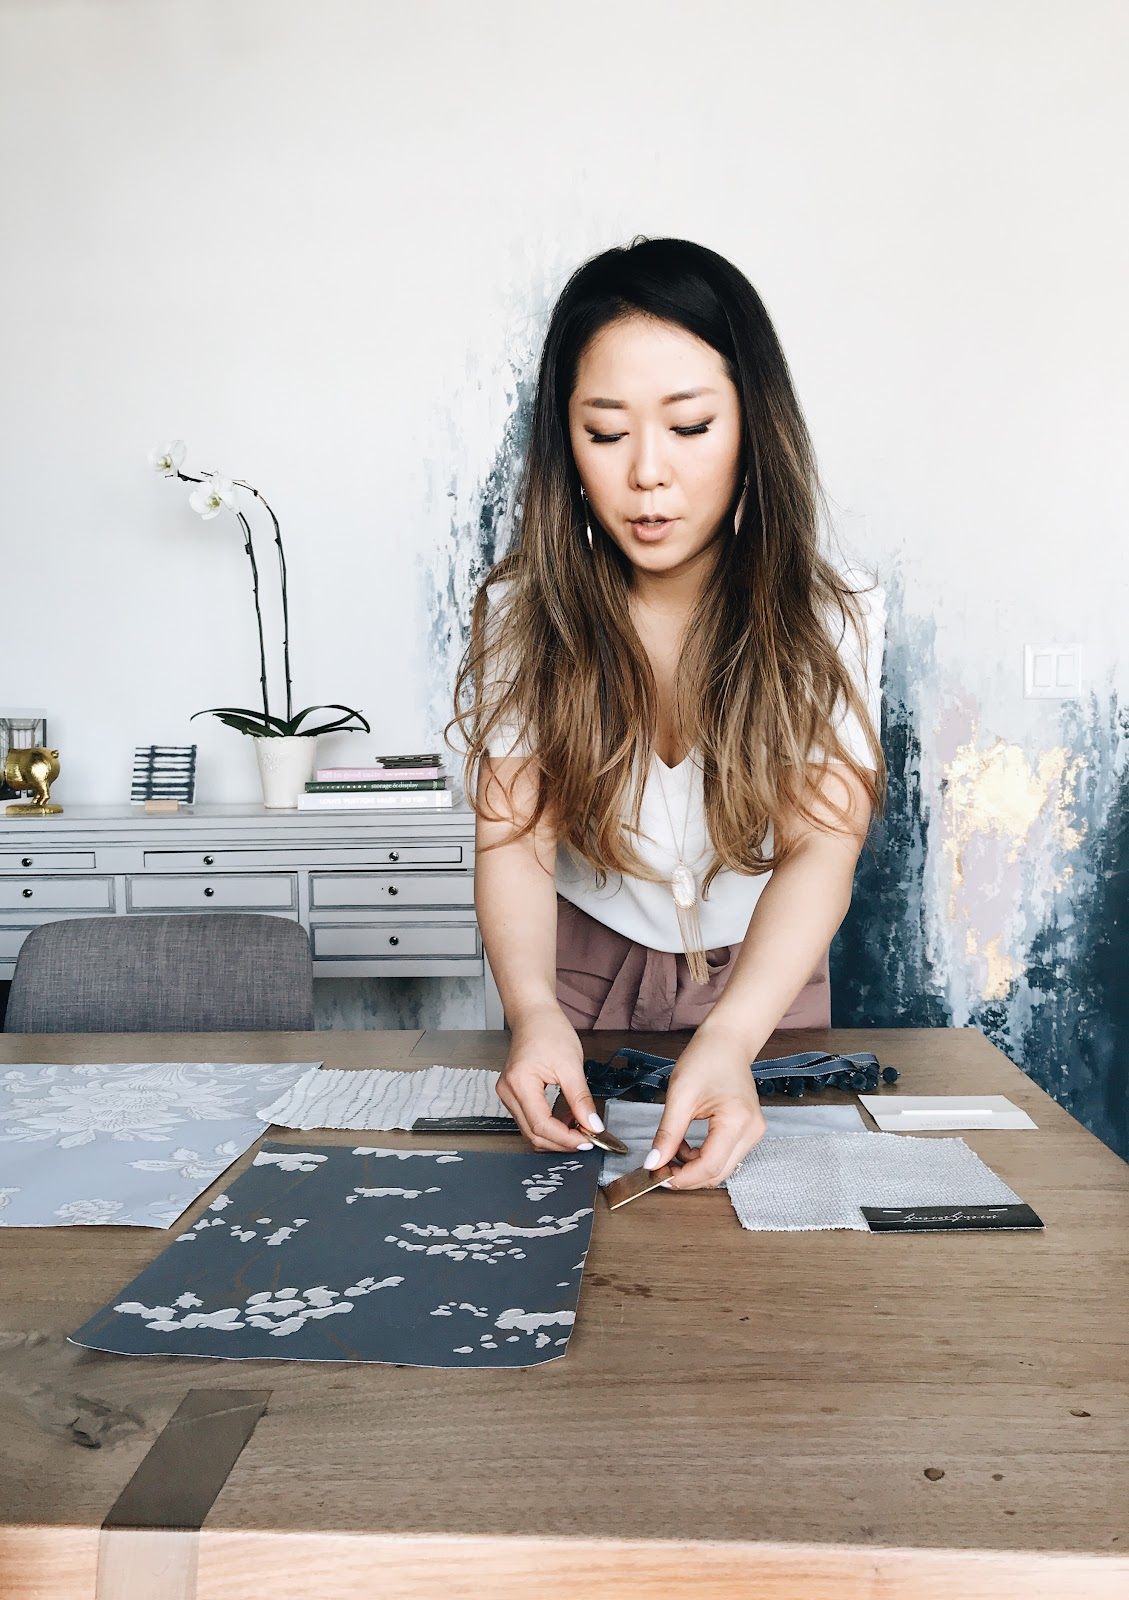 Welcome to LeAnne Bunnell Interiors, a design firm in Calgary, where we bring classic, timeless and highly personal homes to life. Come meet Kelly Kim, Assistant Designer!